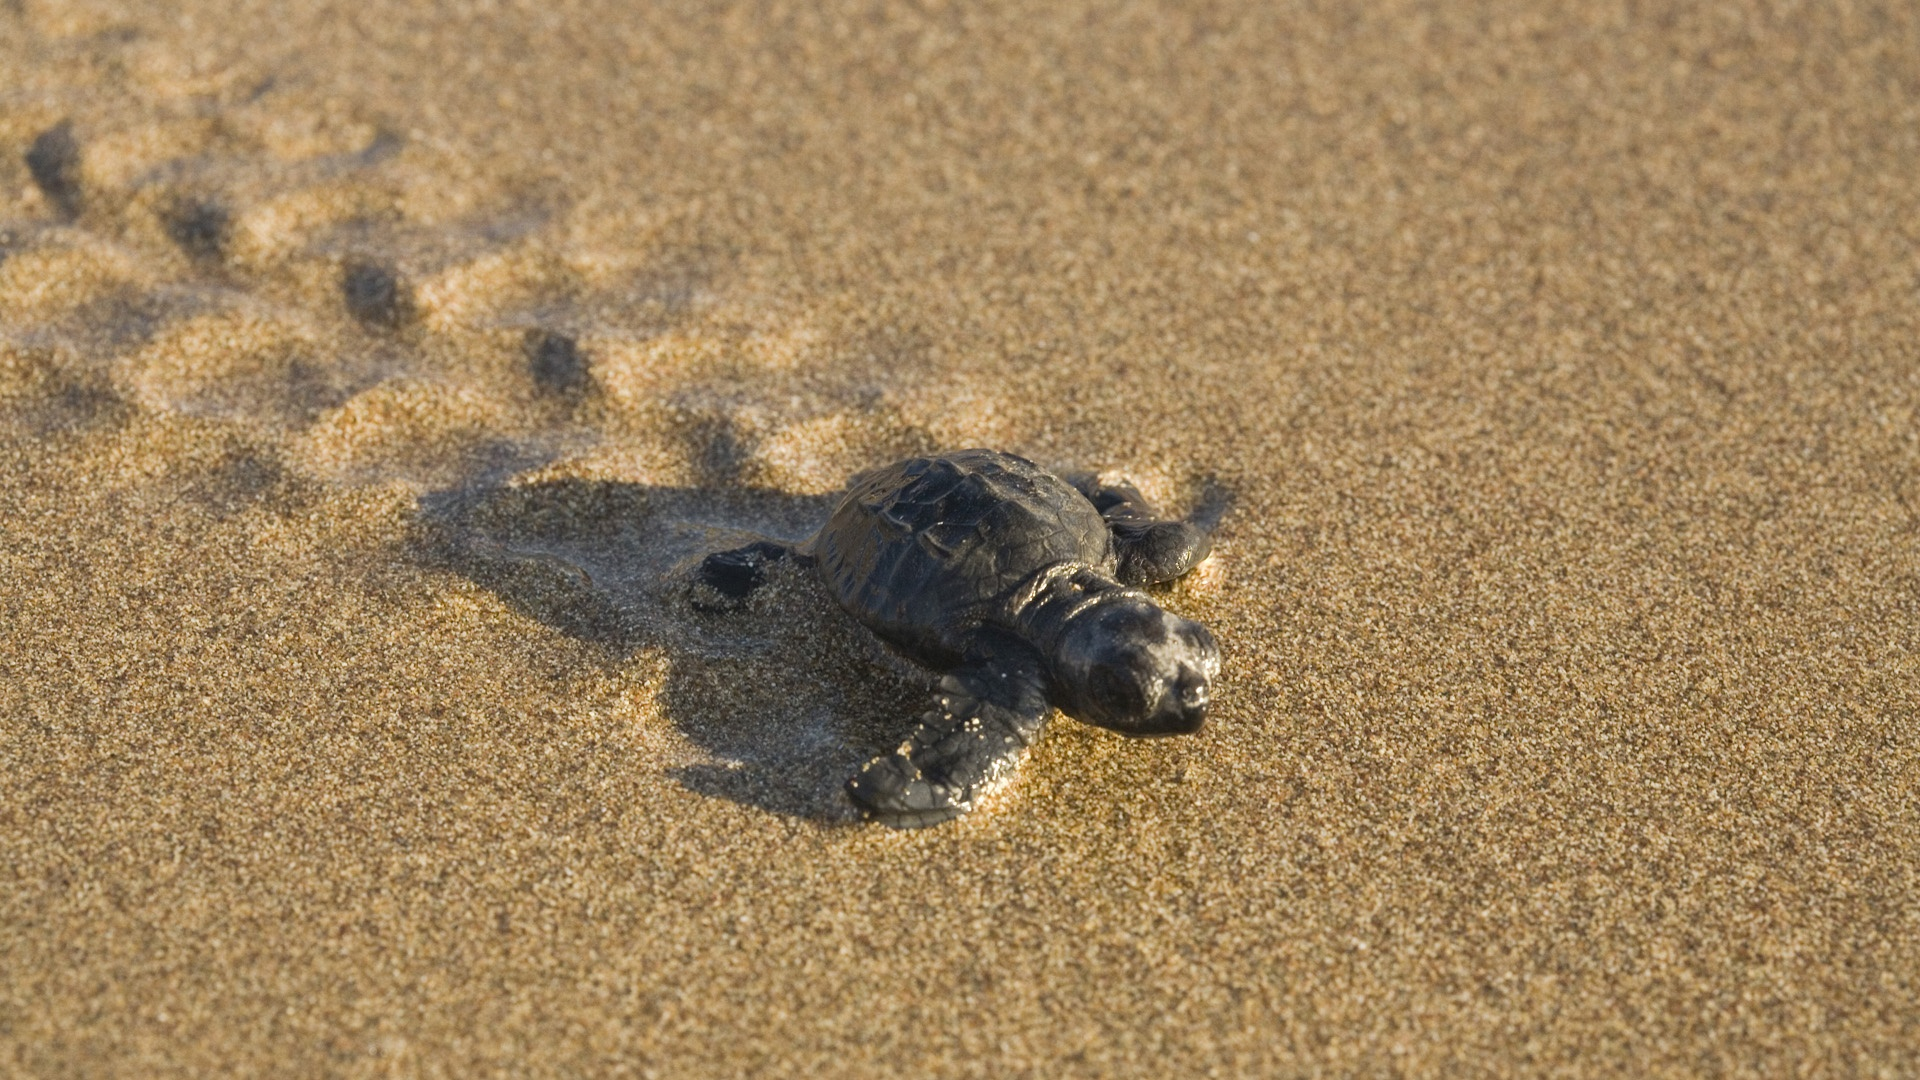 Download Turtle Wallpaper 4649 1920x1080 Px High Resolution